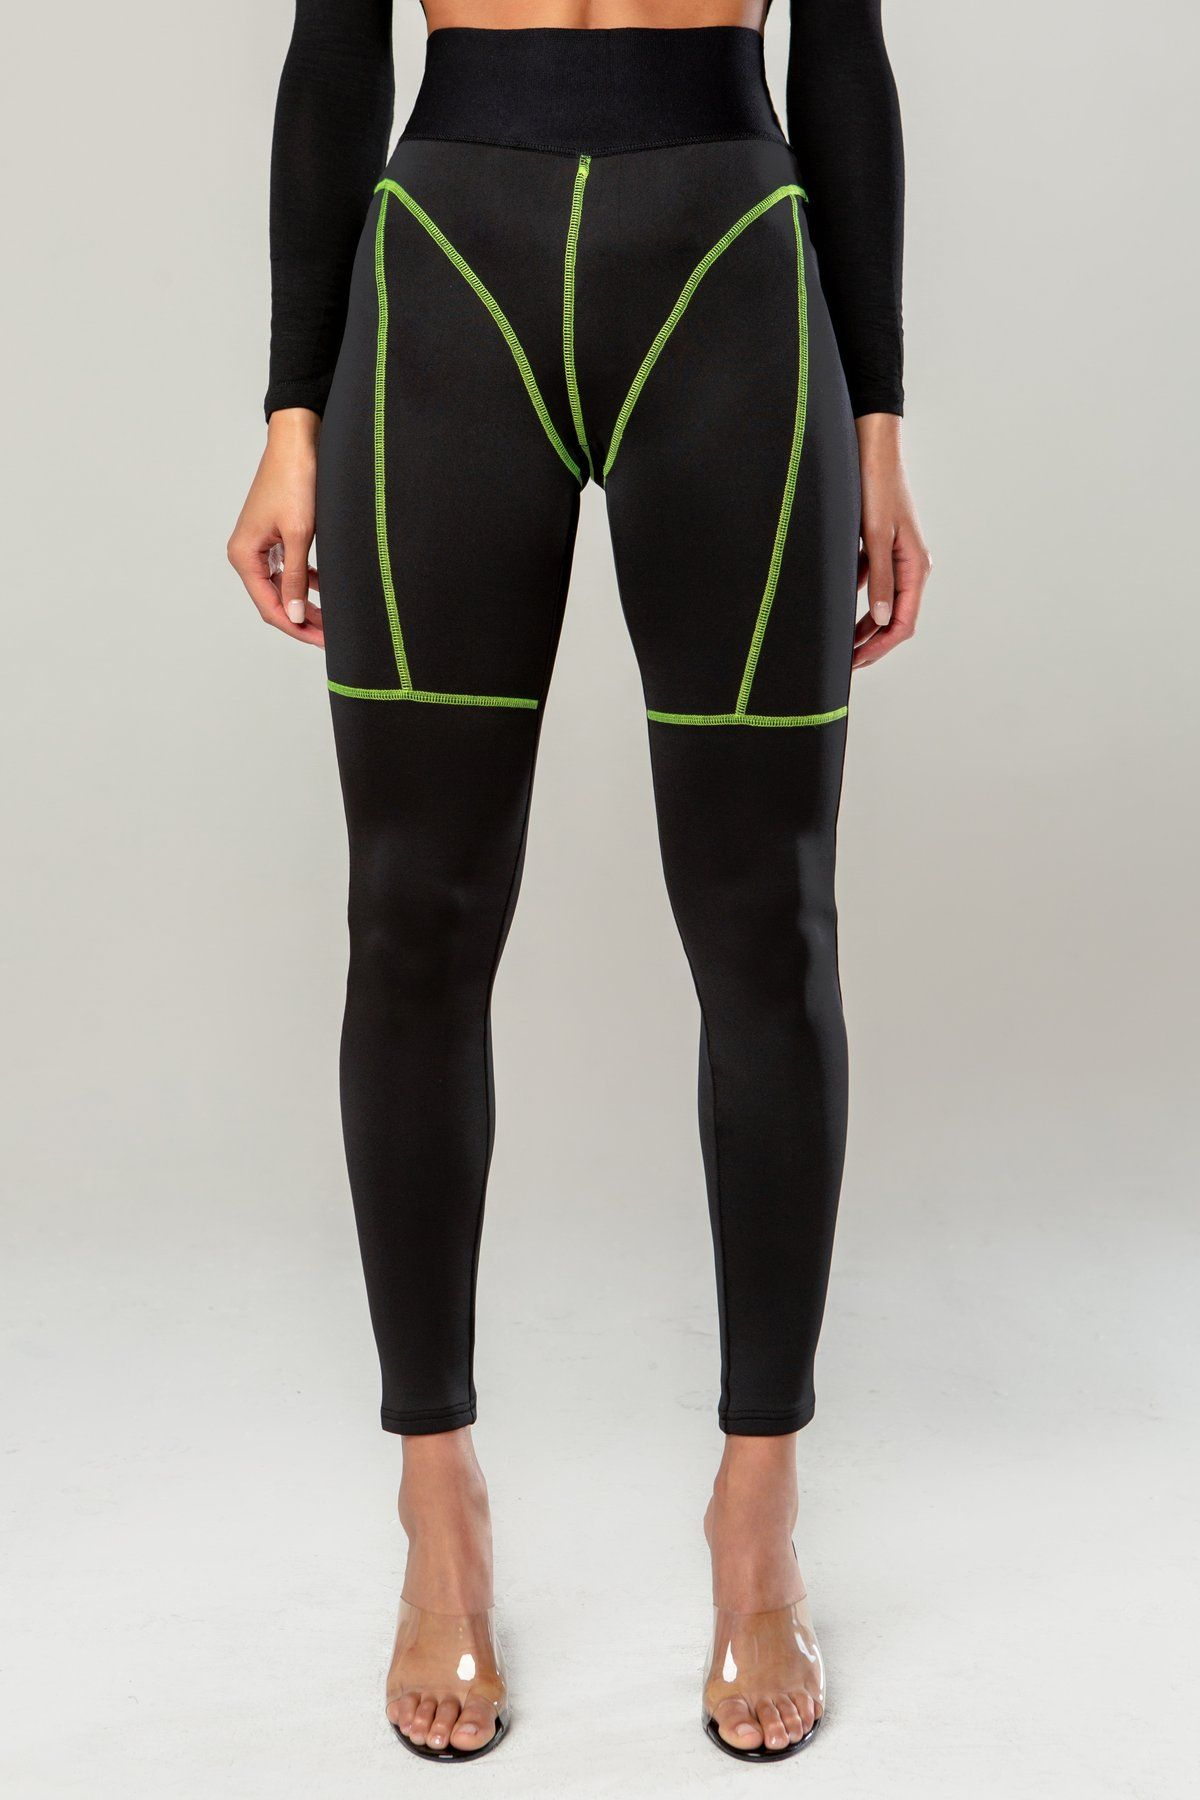 These leggings will flaunt your figure in all of the right